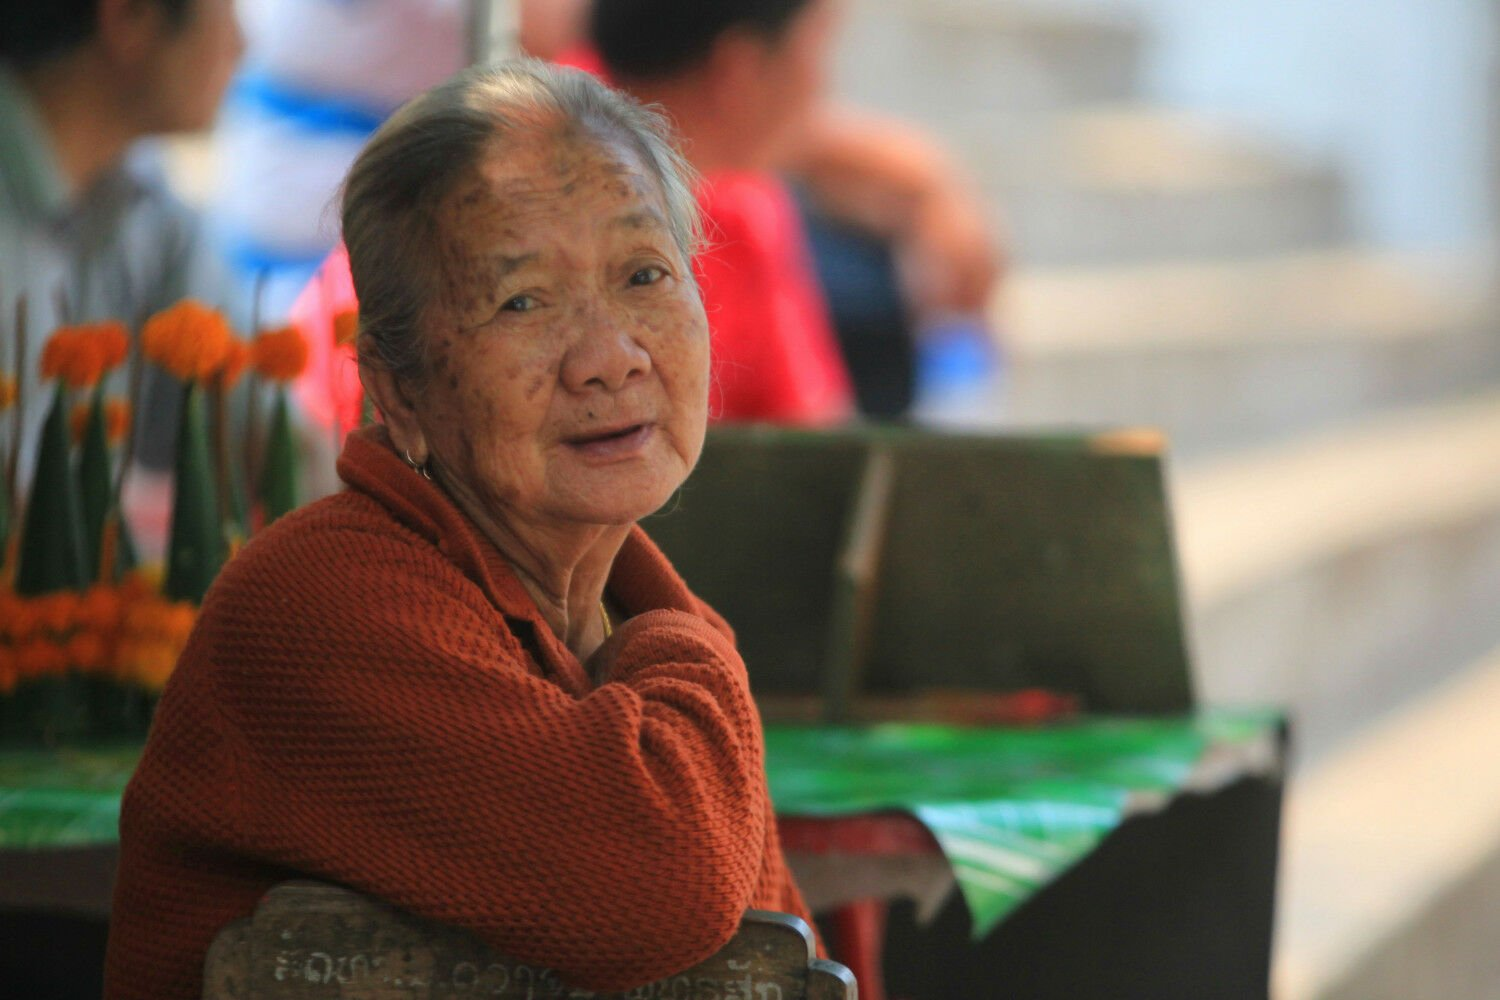 Thai senior and disabled citizens will receive 2,000 baht handouts | The Thaiger